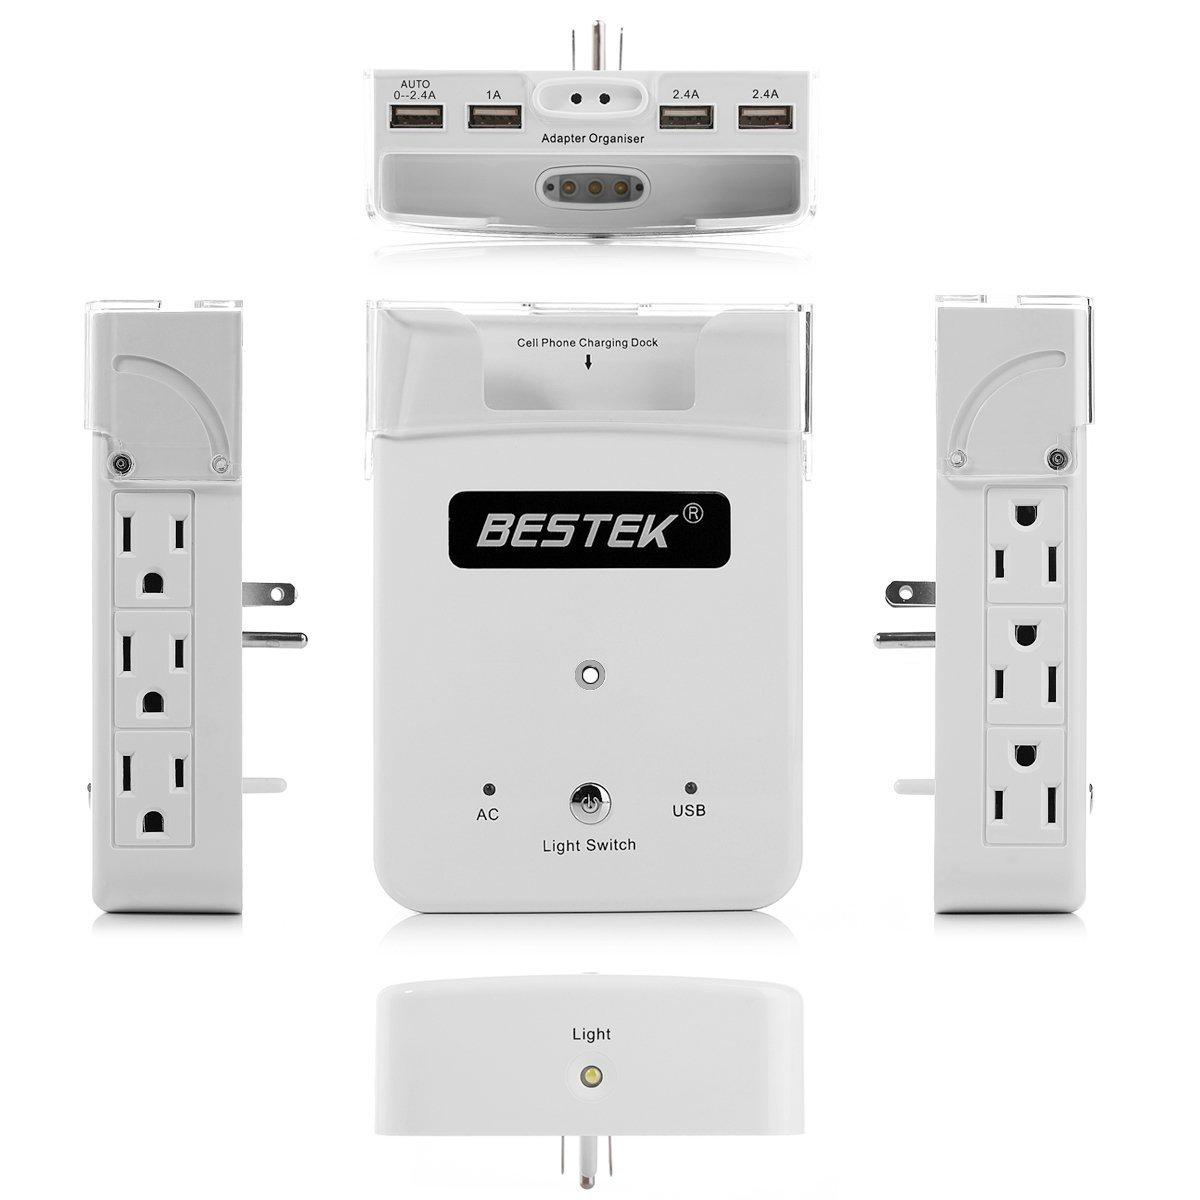 BESTEK 6 Outlet Wall-Mount Surge Protector with 5.2A 4 USB Charging Ports